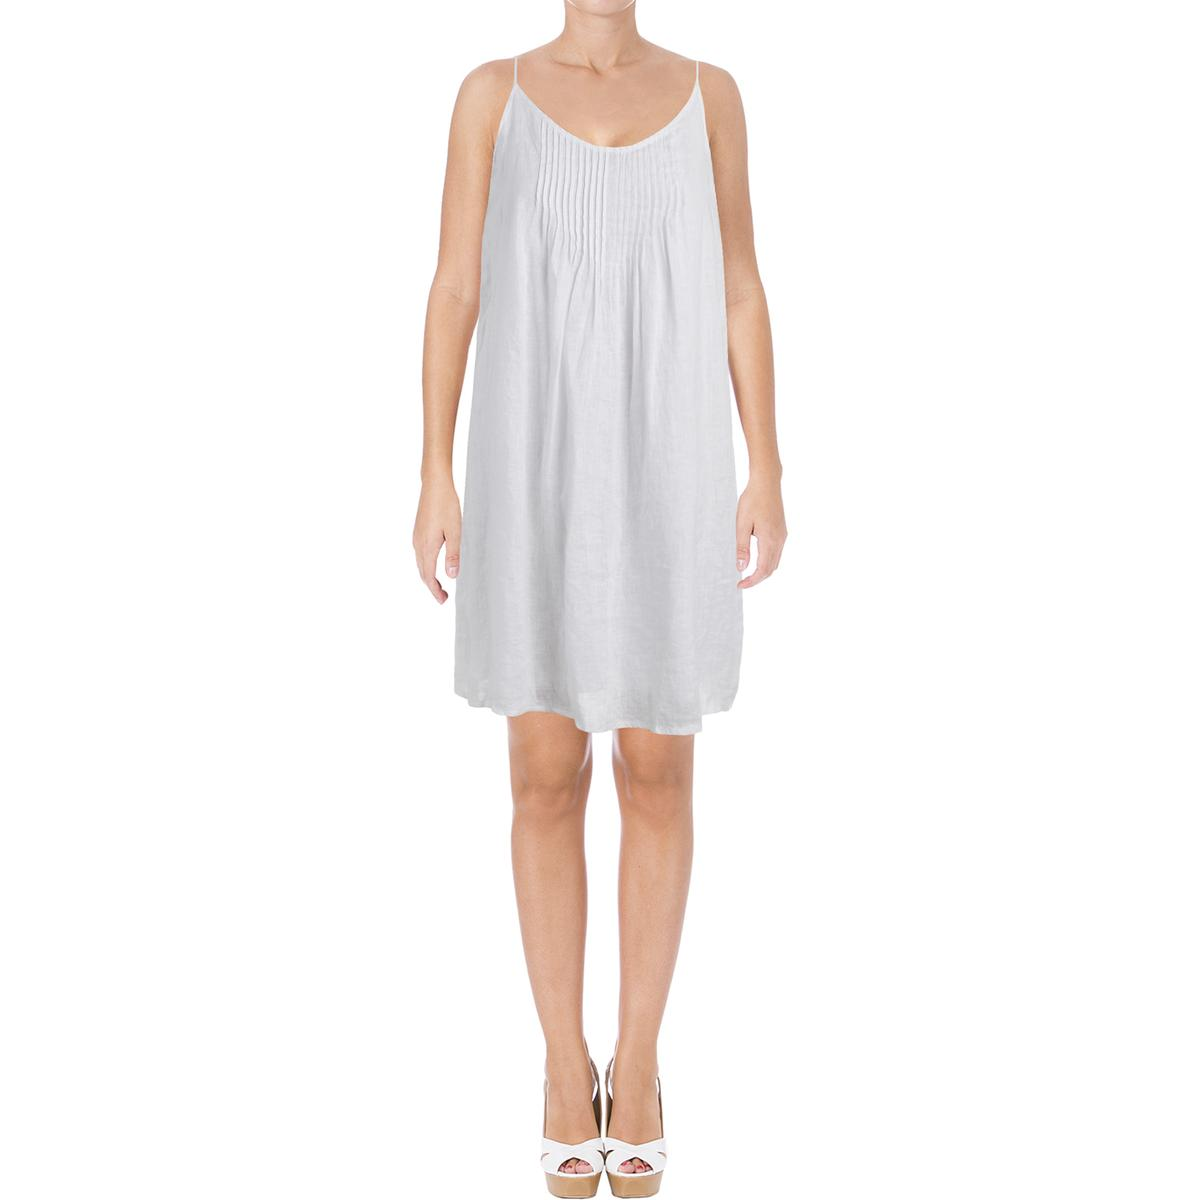 a9091b90c1 Details about Two by Vince Camuto Womens Linen Pintuck Swing Sundress BHFO  5688